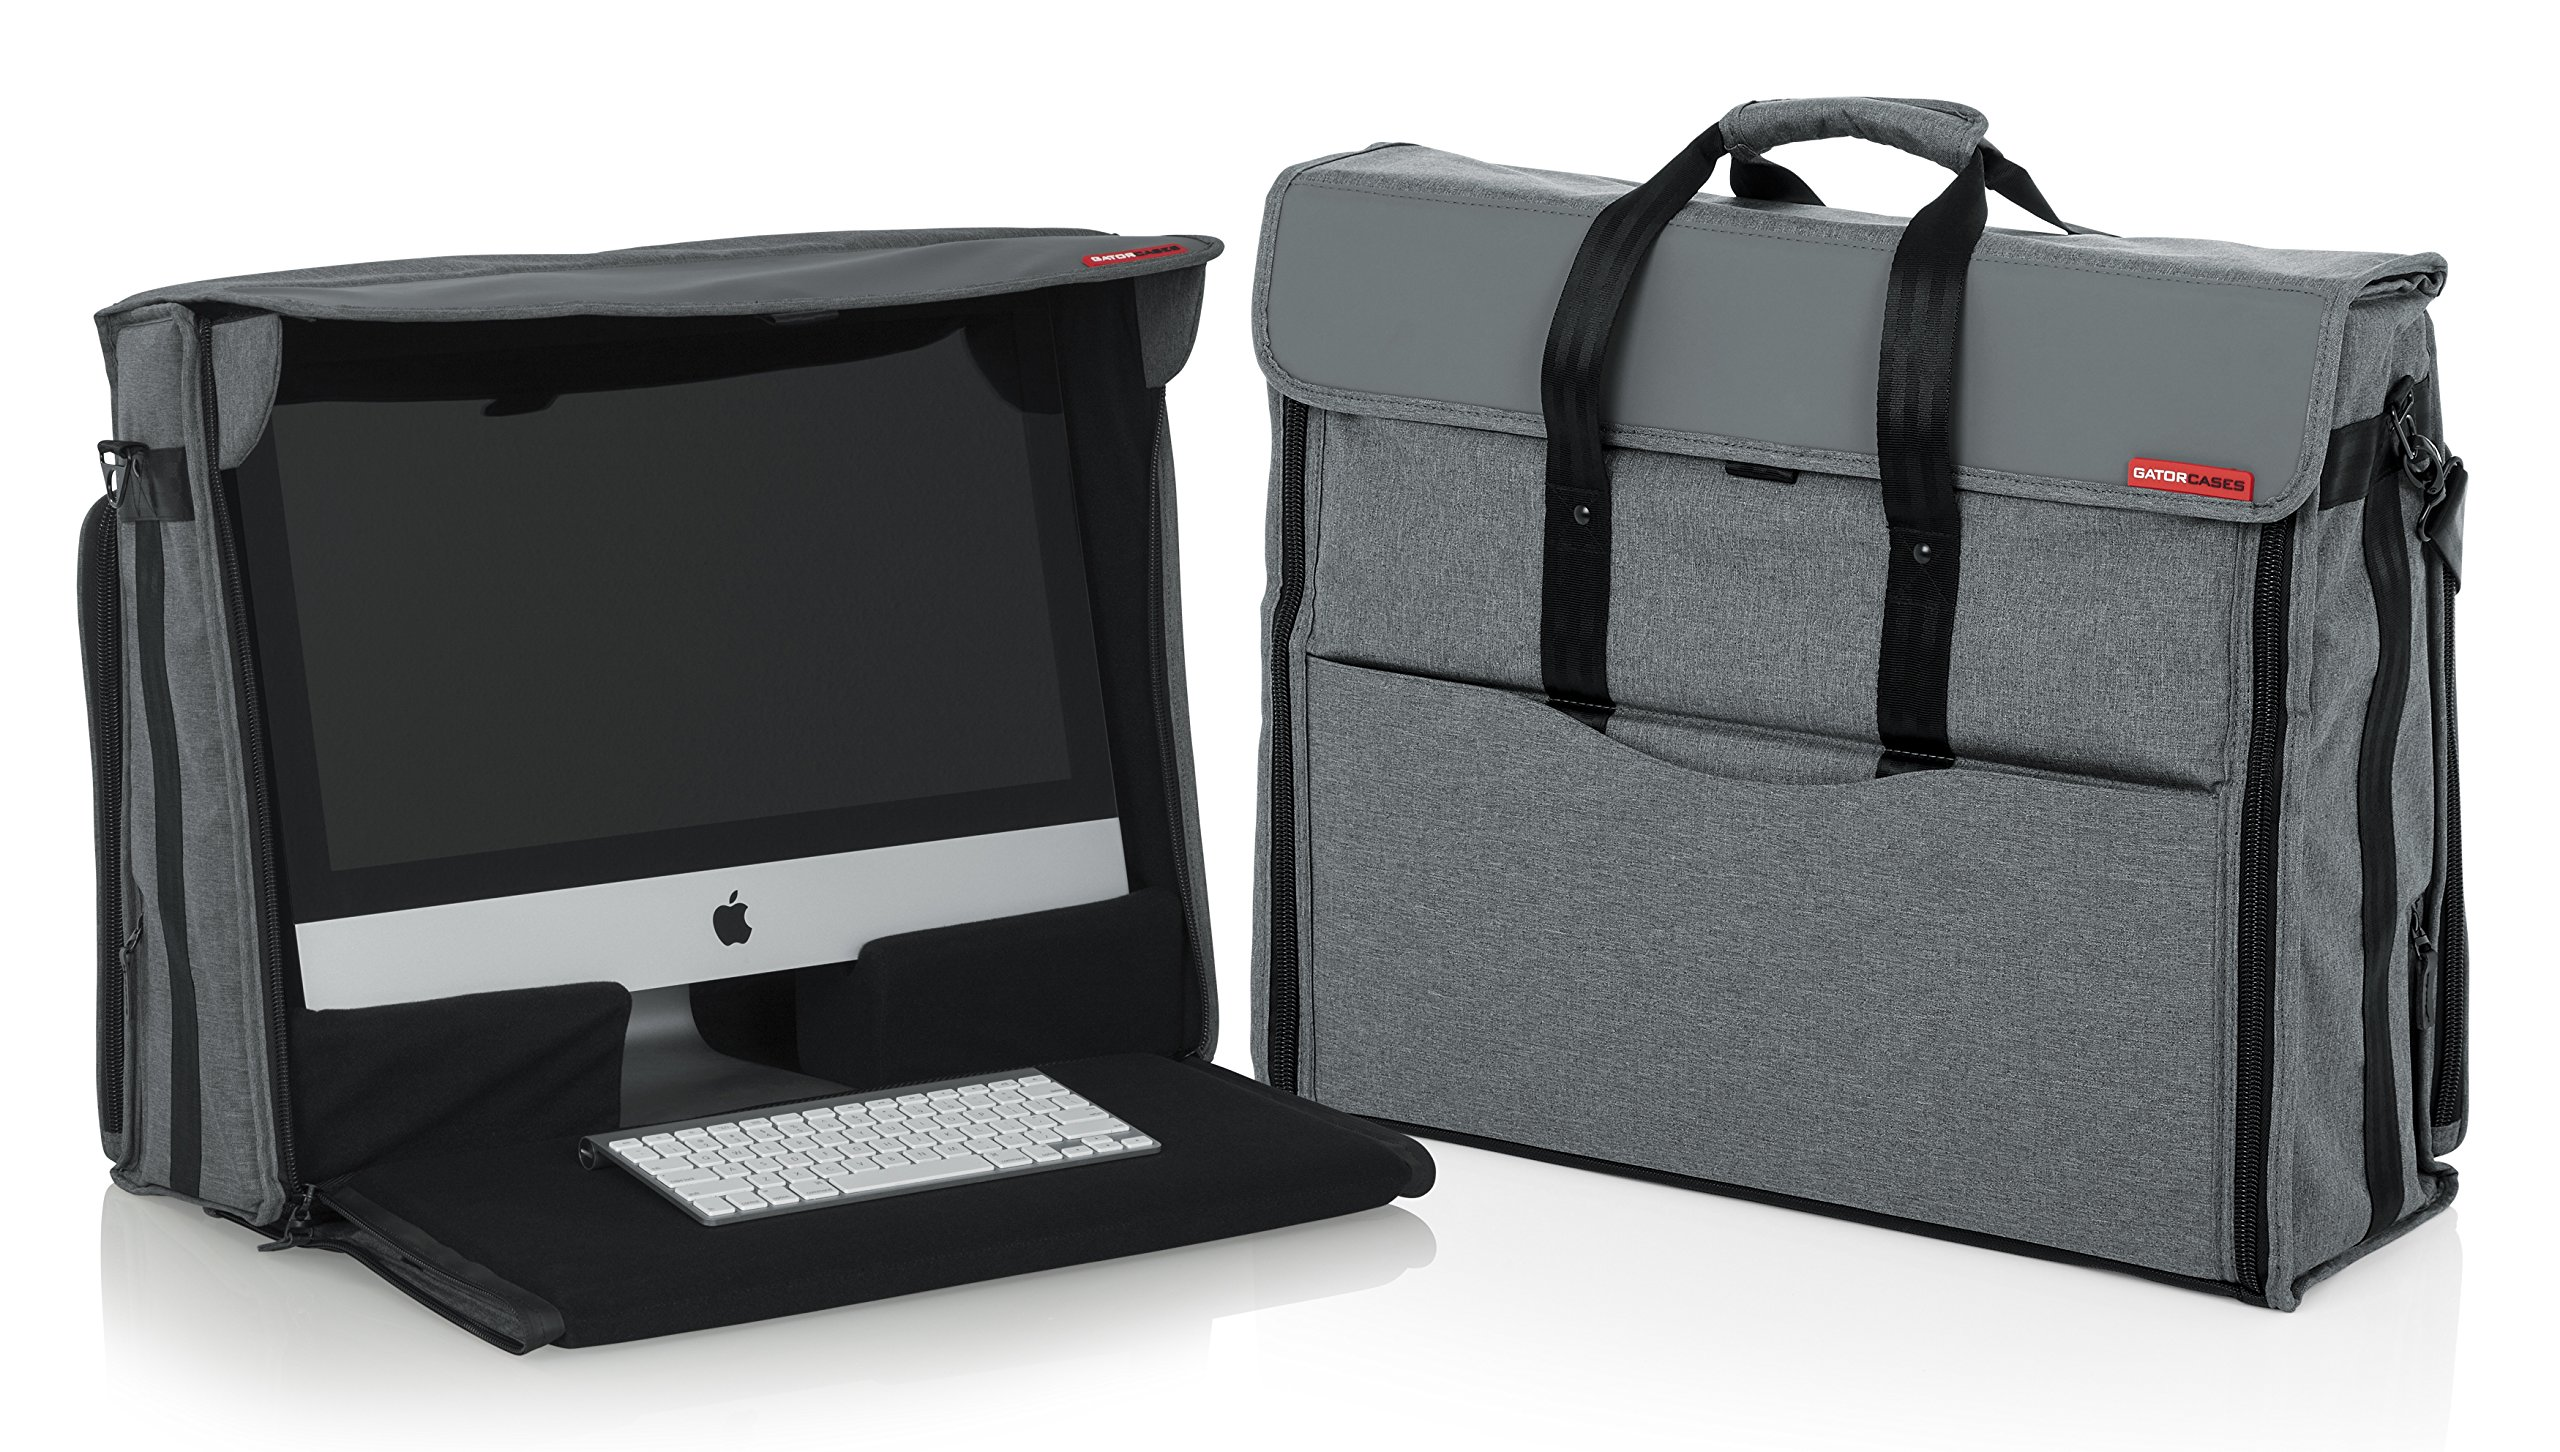 Gator Cases Creative Pro Series Nylon Carry Tote Bag for Apple 21.5'' iMac Desktop Computer (G-CPR-IM21)